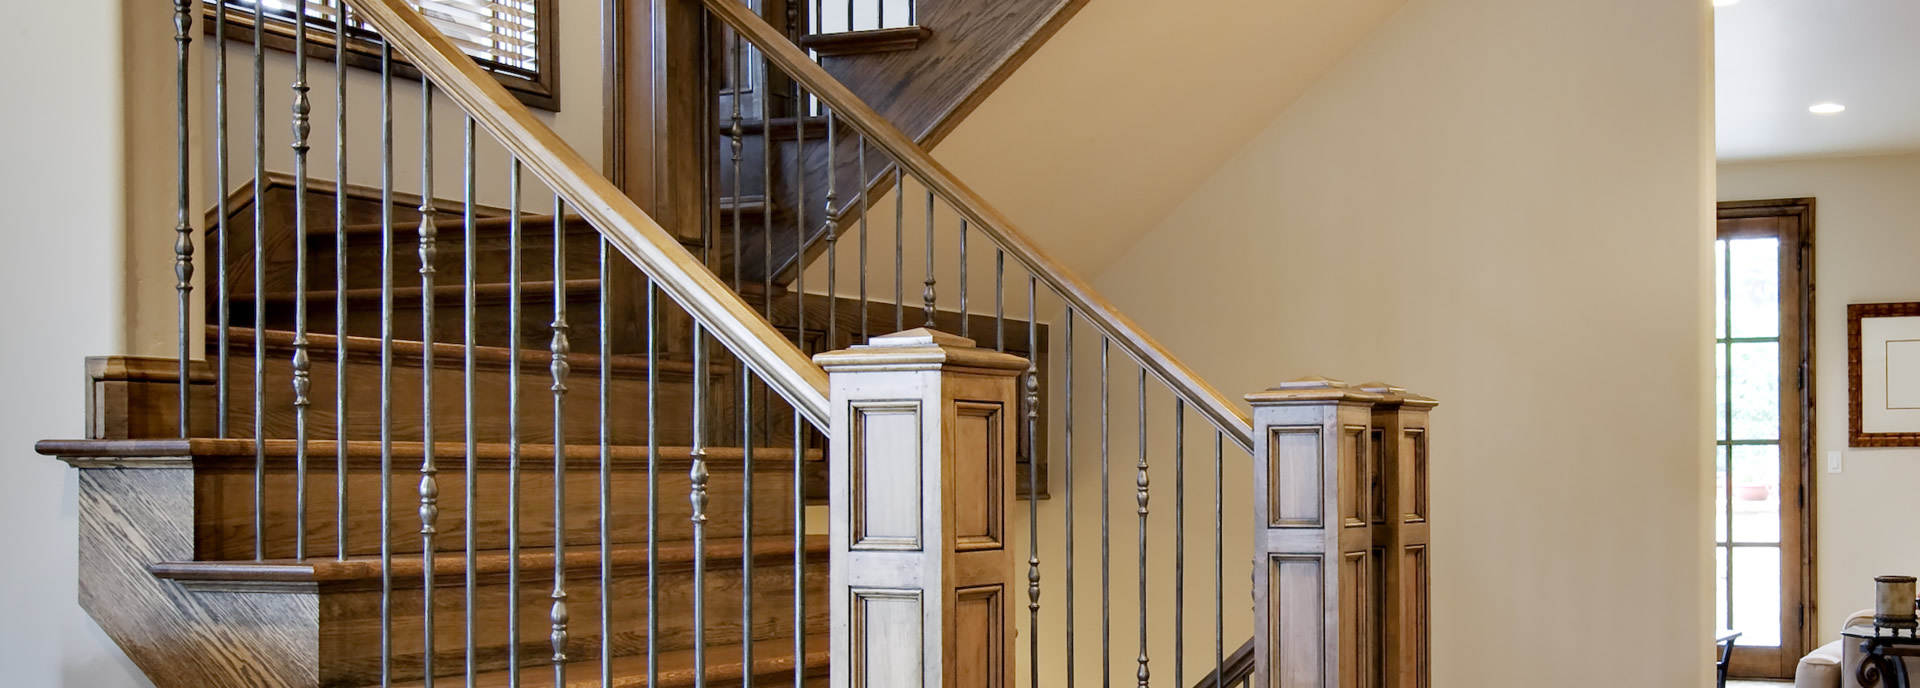 Prefabricated Stairs Benefits Alpharetta, GA